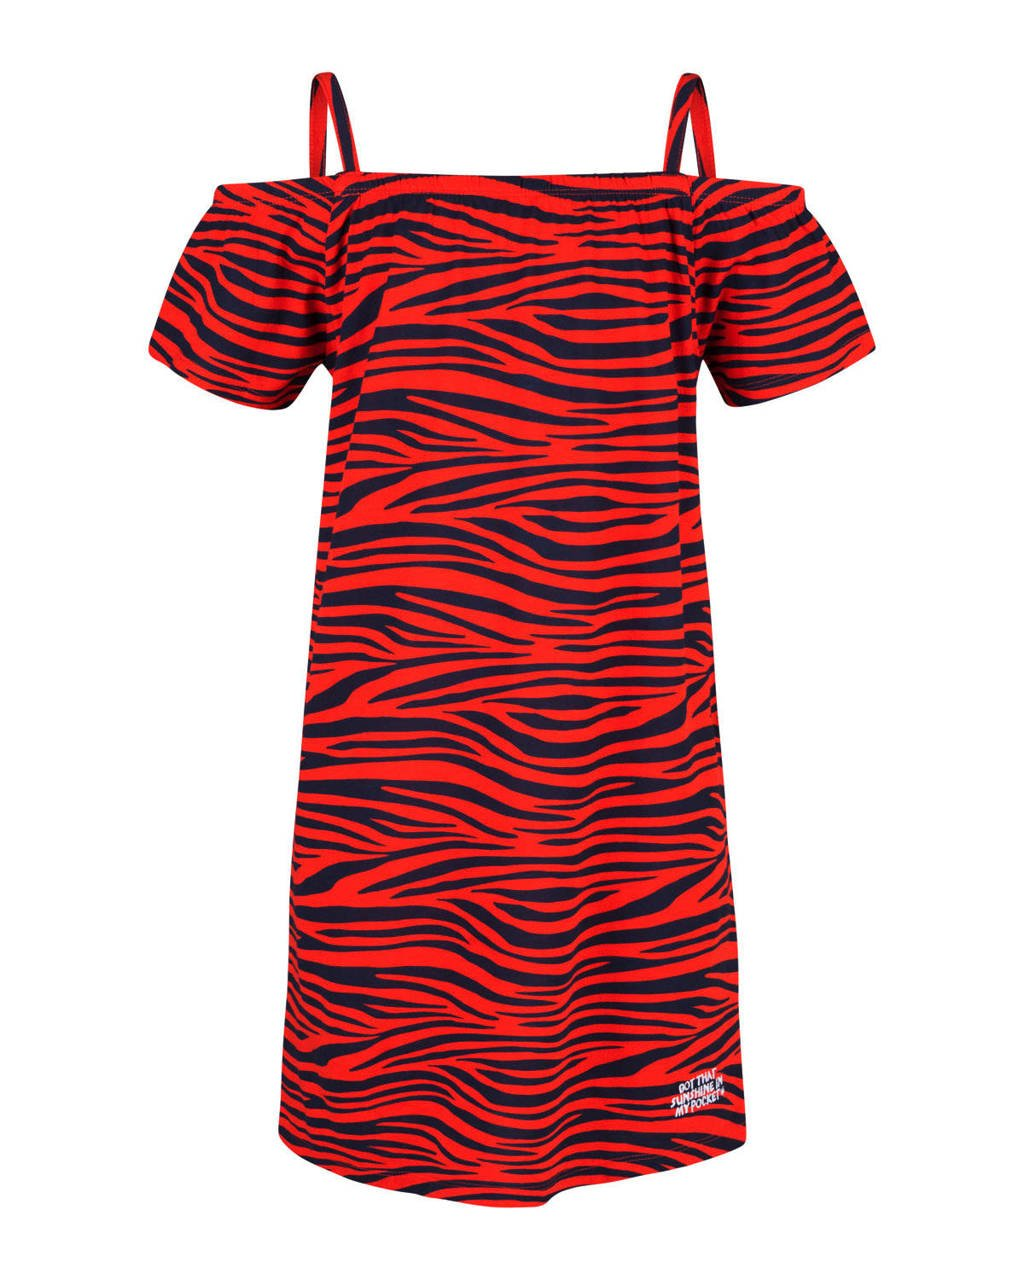 WE Fashion open shoulder jurk met zebraprint rood, Rood/zwart